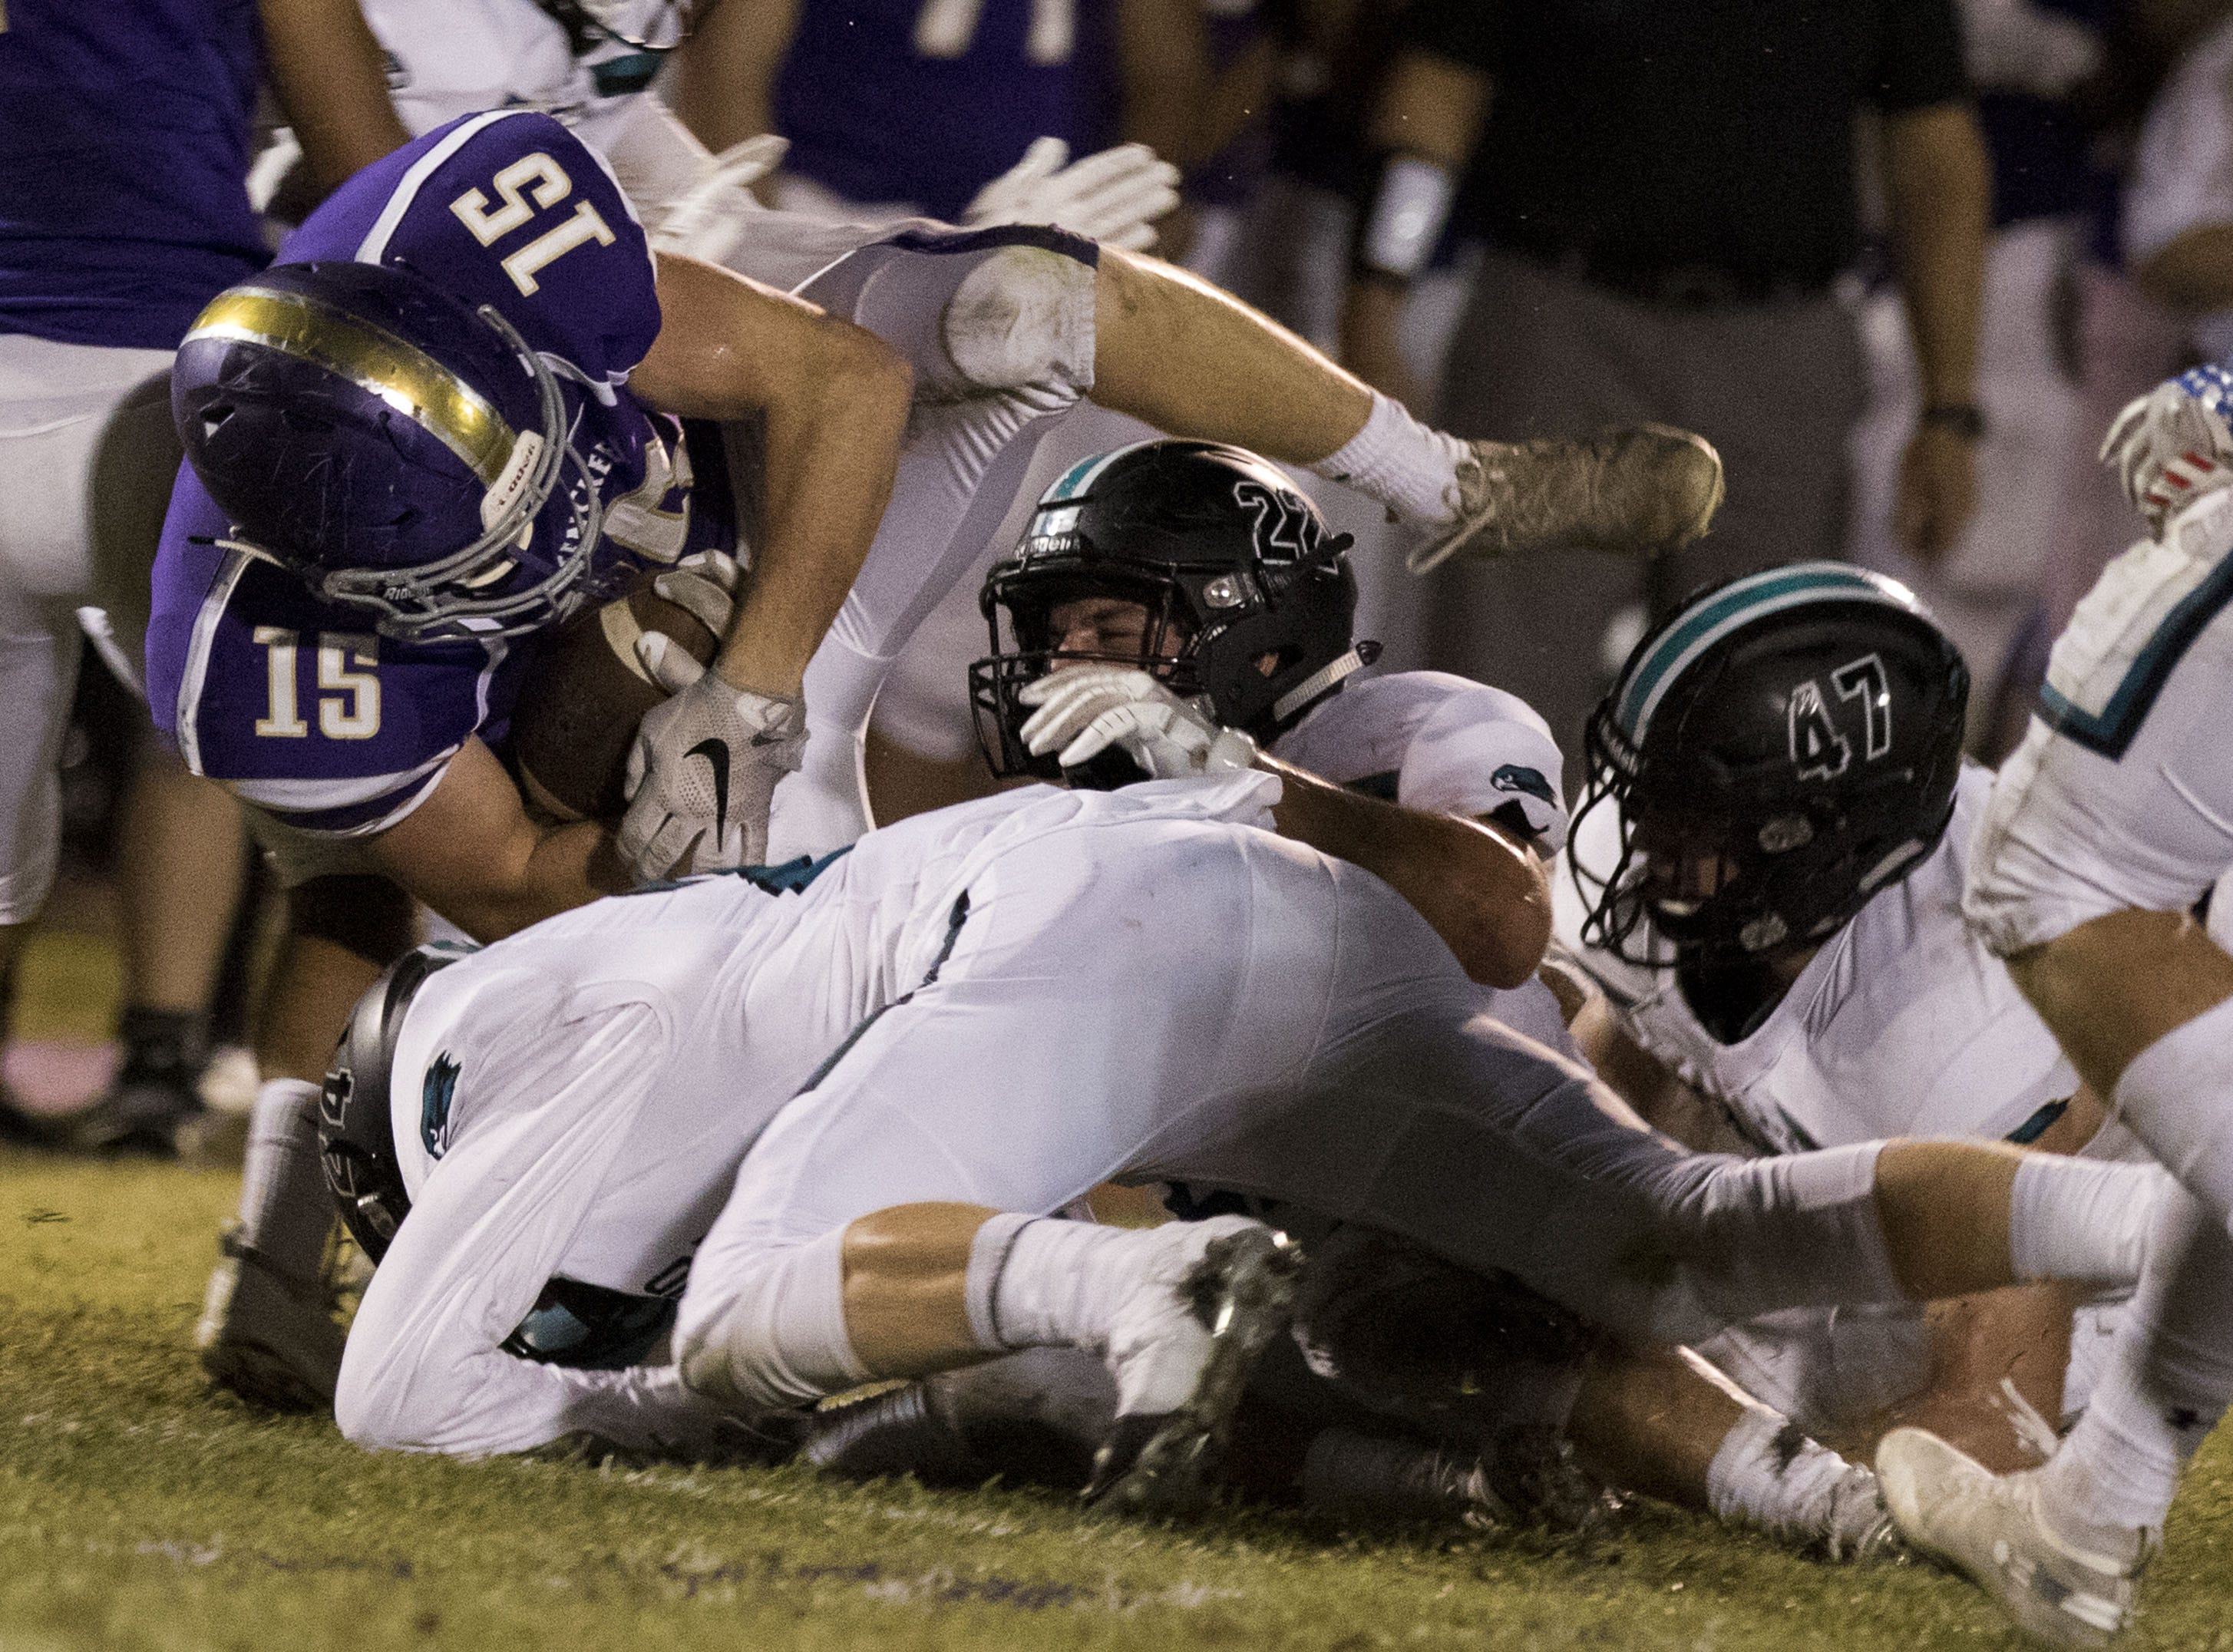 Queen Creek's Jacob Berry dives over a pile of Highland Hawks during them game in Queen Creek Friday, Oct. 19, 2018. #azhsfb